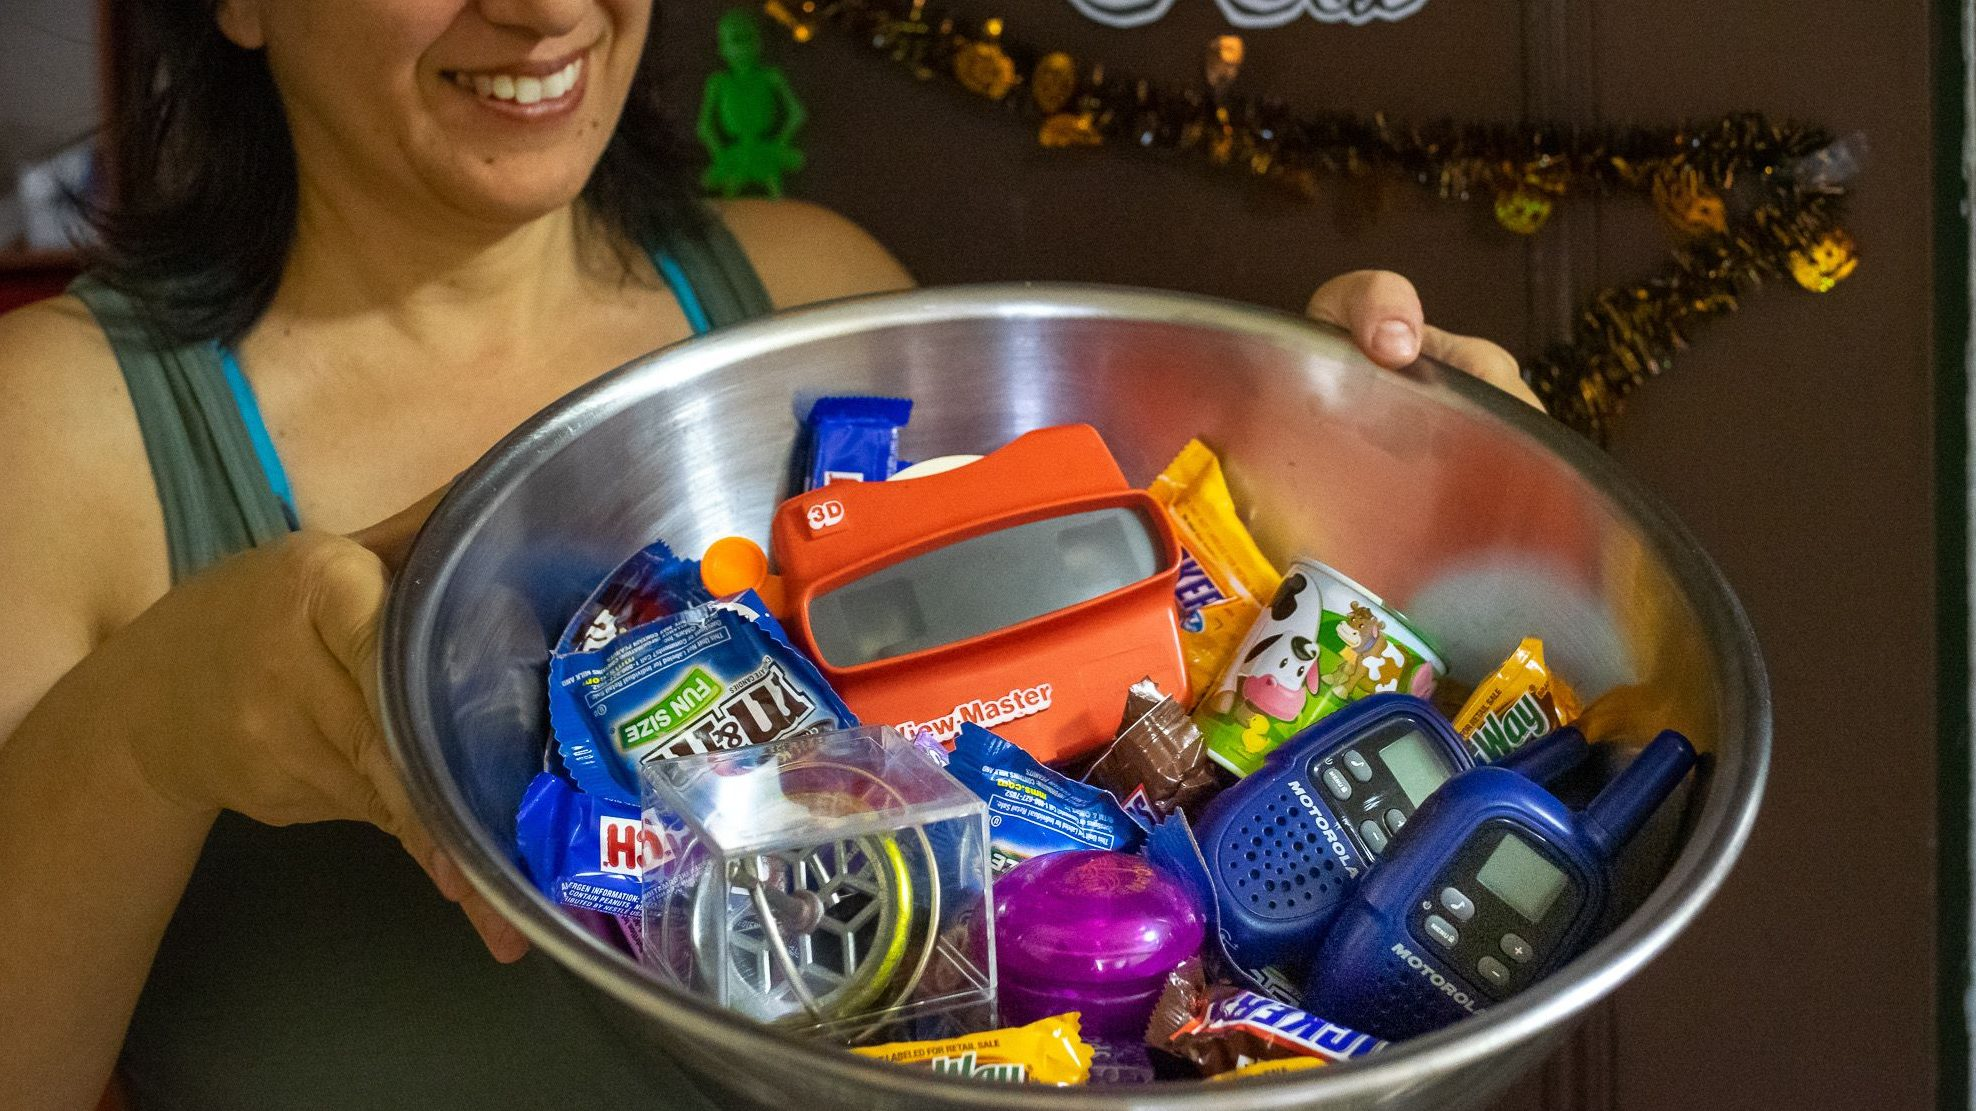 A large bowl of candy and toys